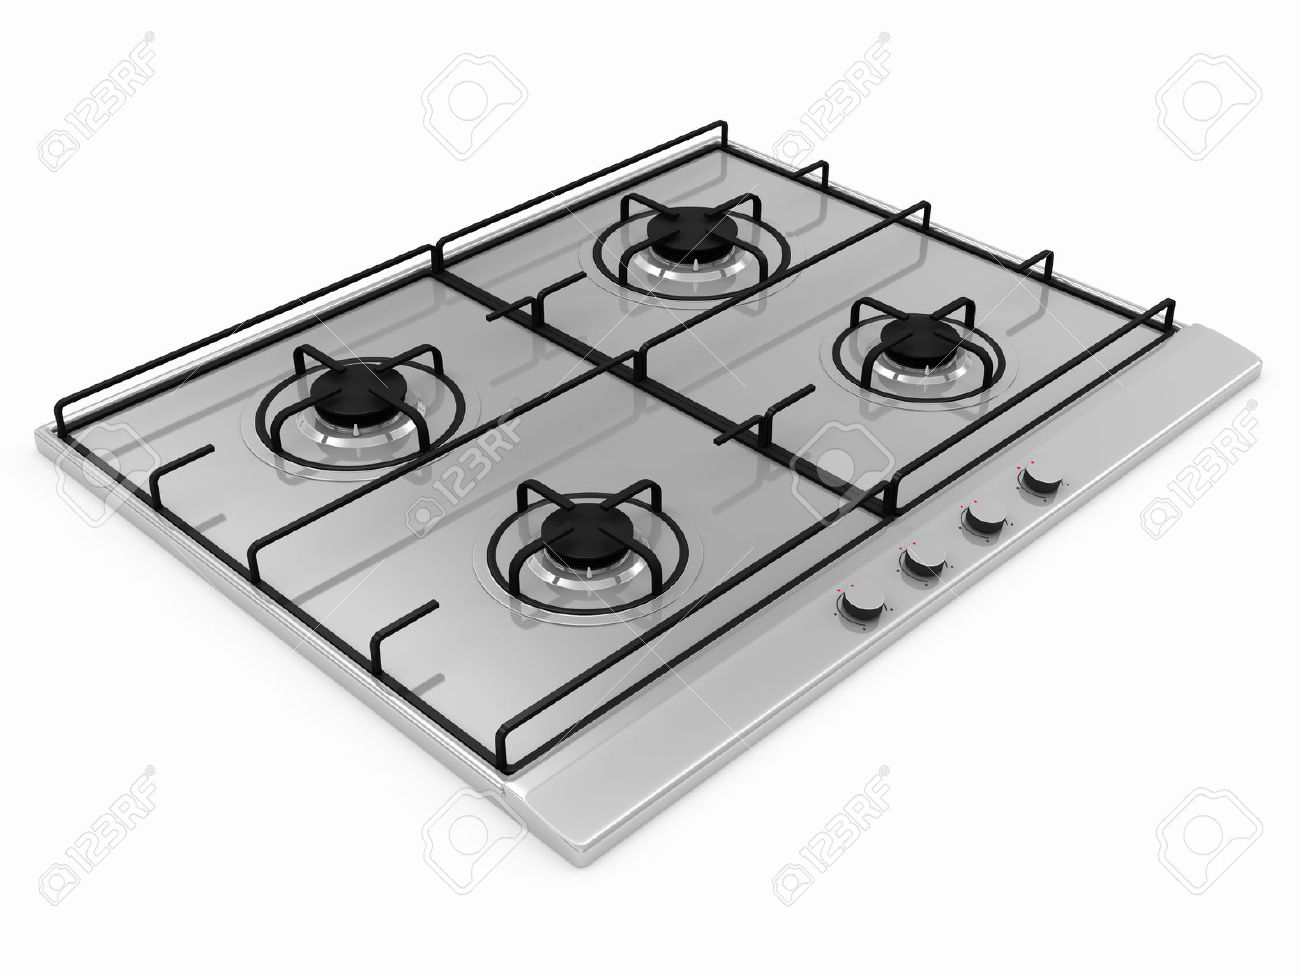 Gas Stove Isolated On White Background Stock Photo, Picture And.